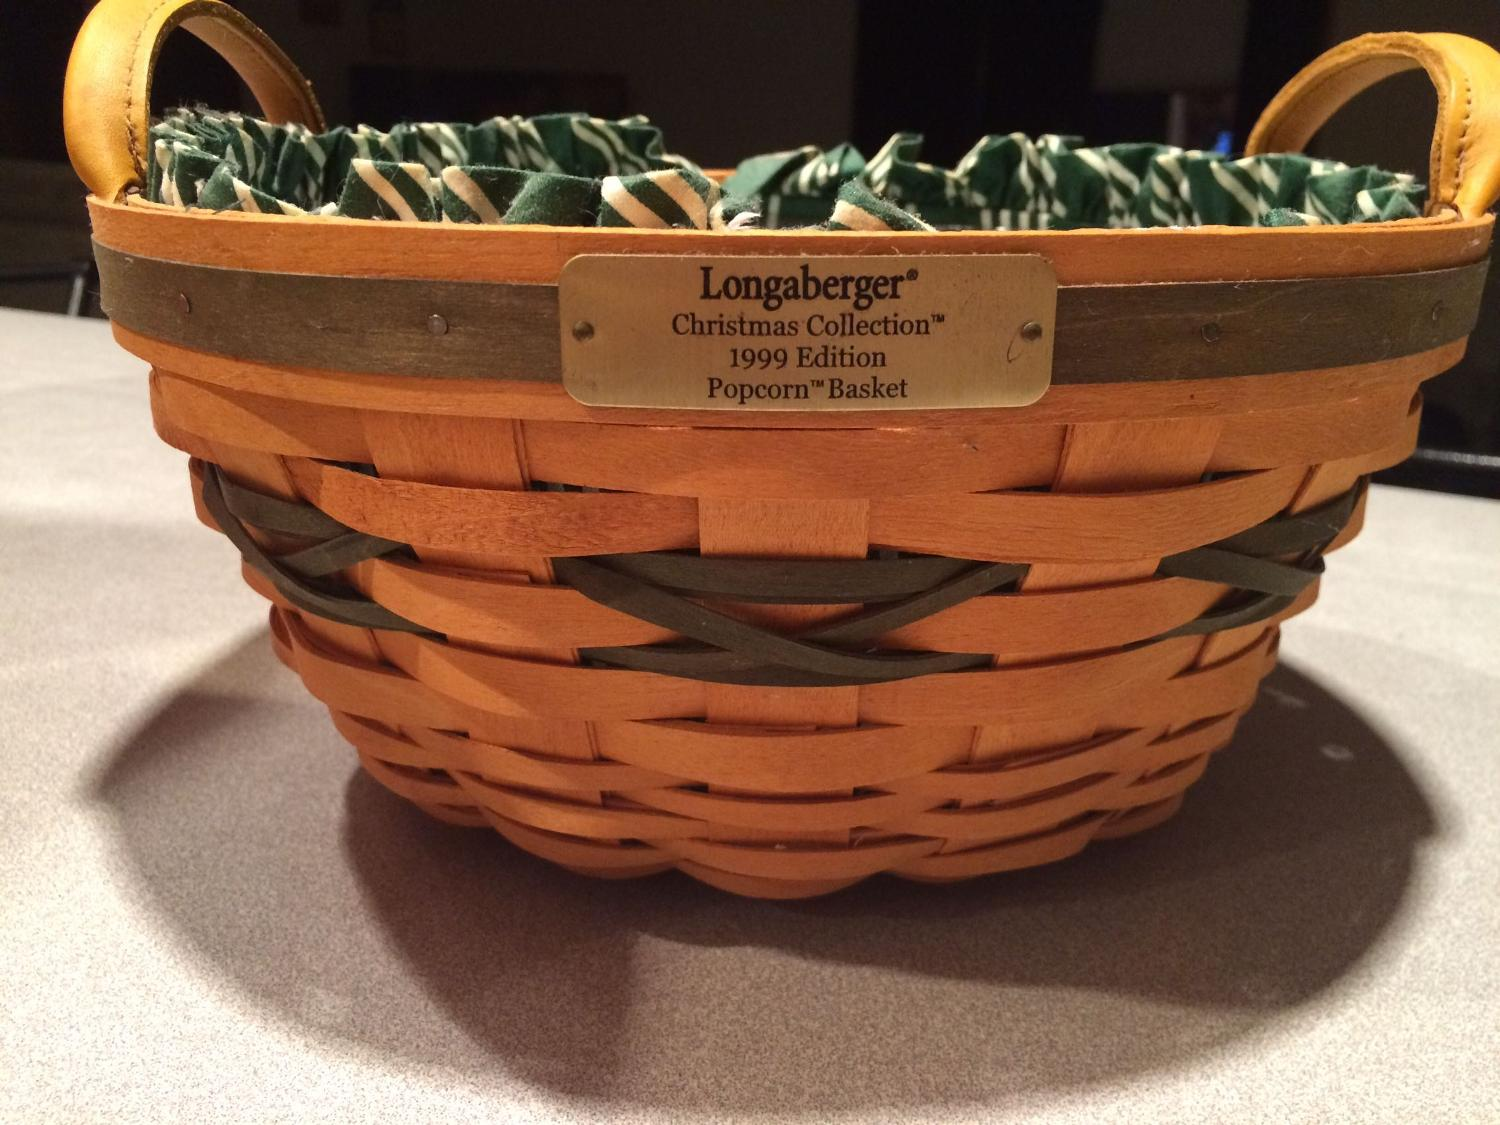 Best Longaberger 1999 Christmas Collection Popcorn Basket: longaberger baskets for sale